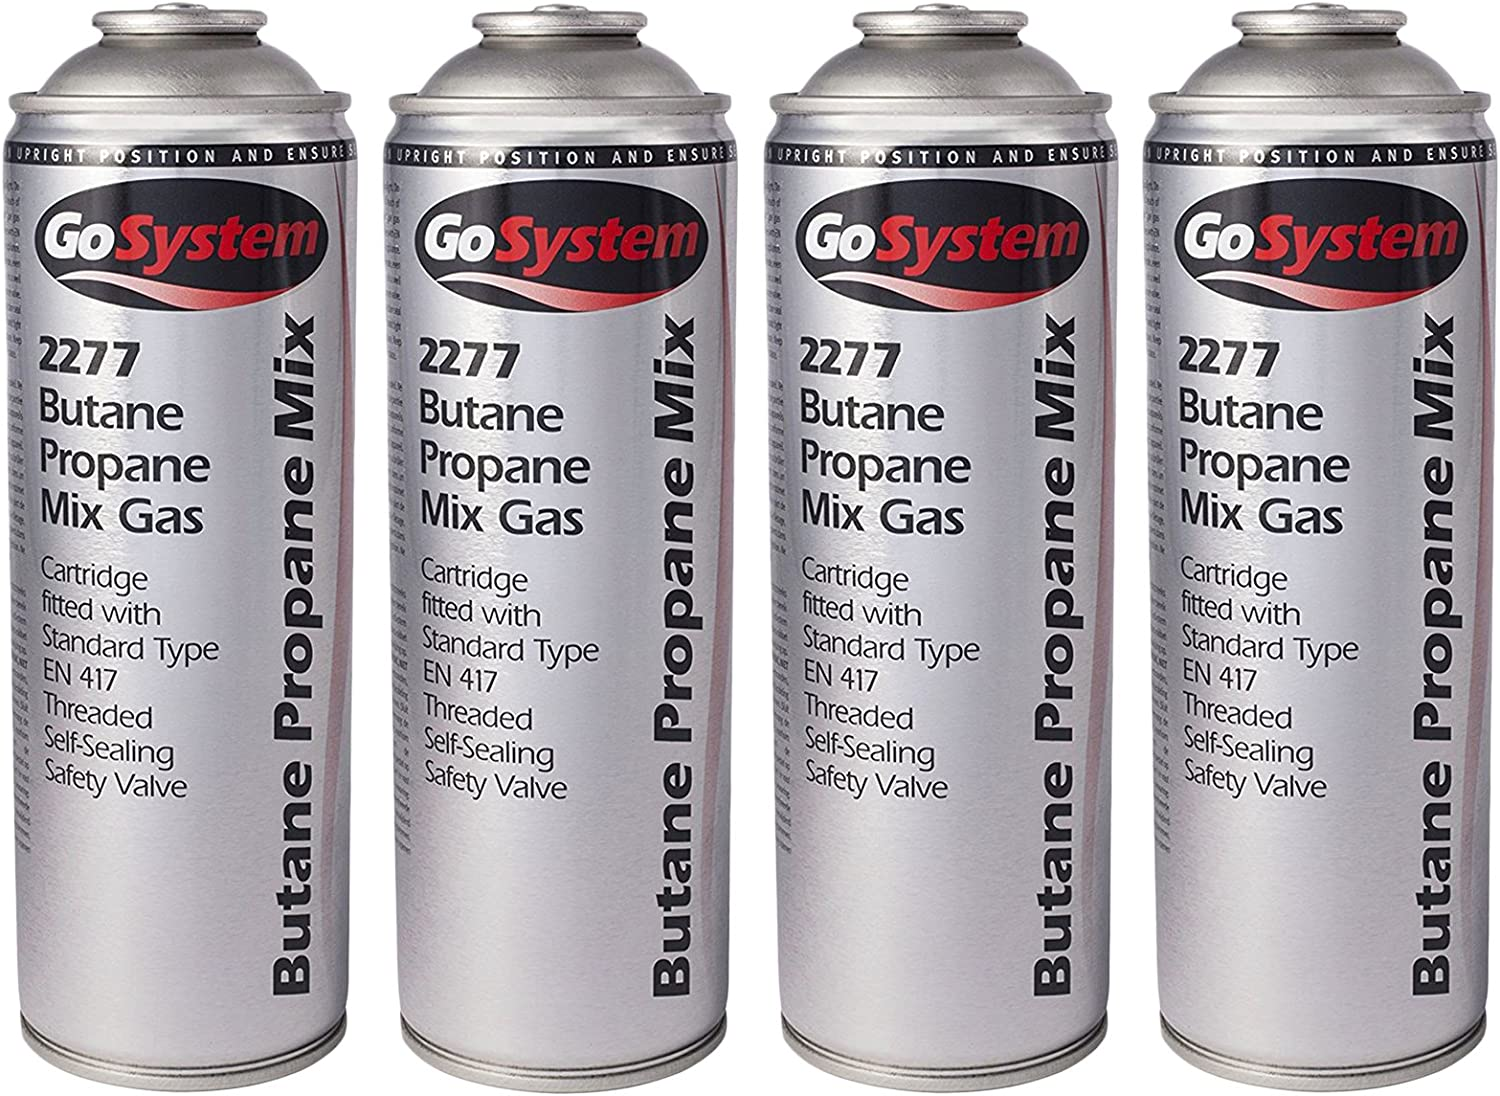 Butane Propane 70 30 Mix Gas Cartridge Silver 350 G Fitted With St FREE SHIPPING